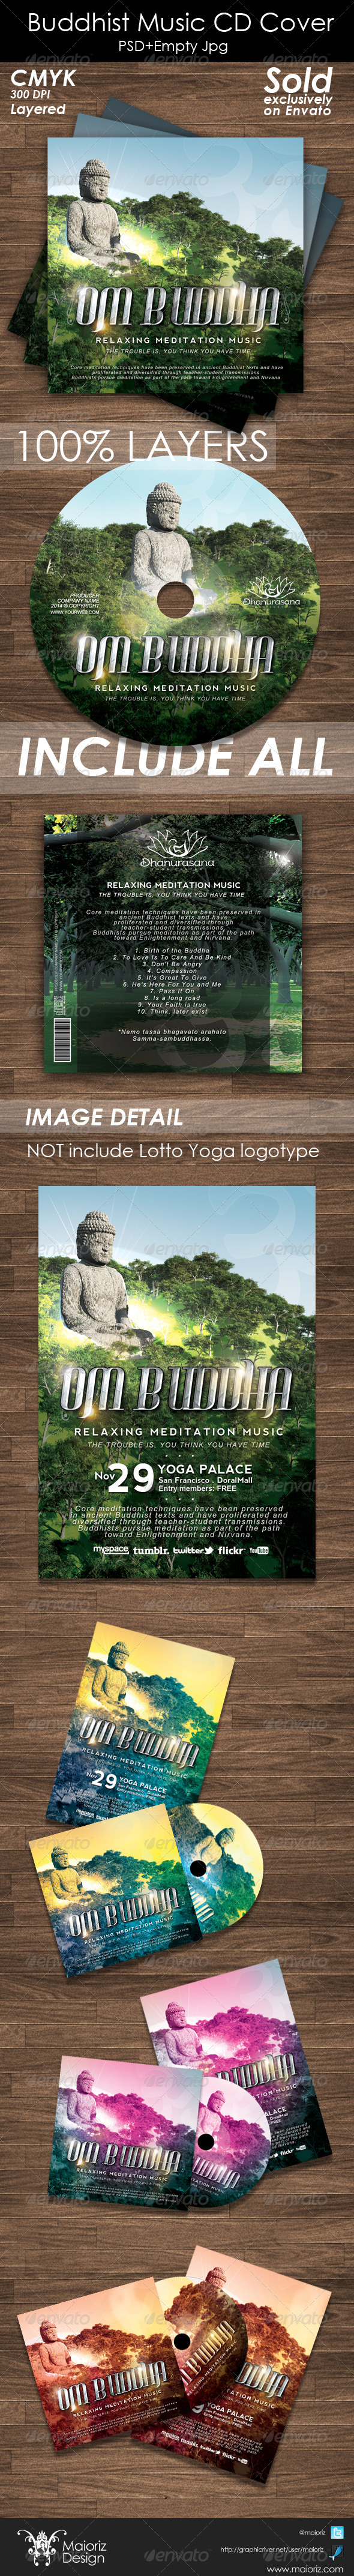 Buddhist Music Cd Cover - Print Templates